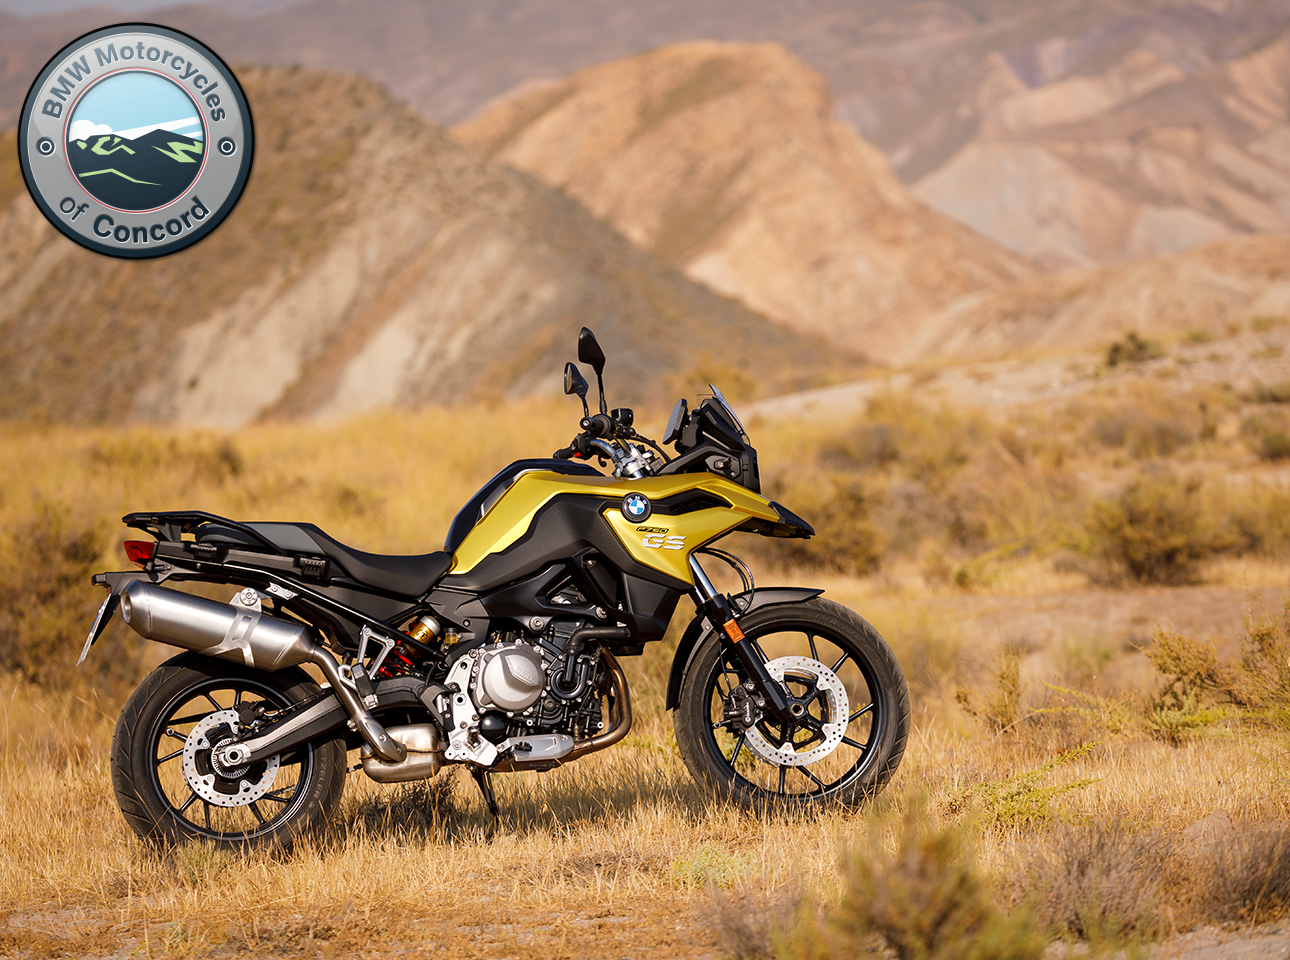 BMW Motorcycles of Concord  - BMW F750 GS Image 6